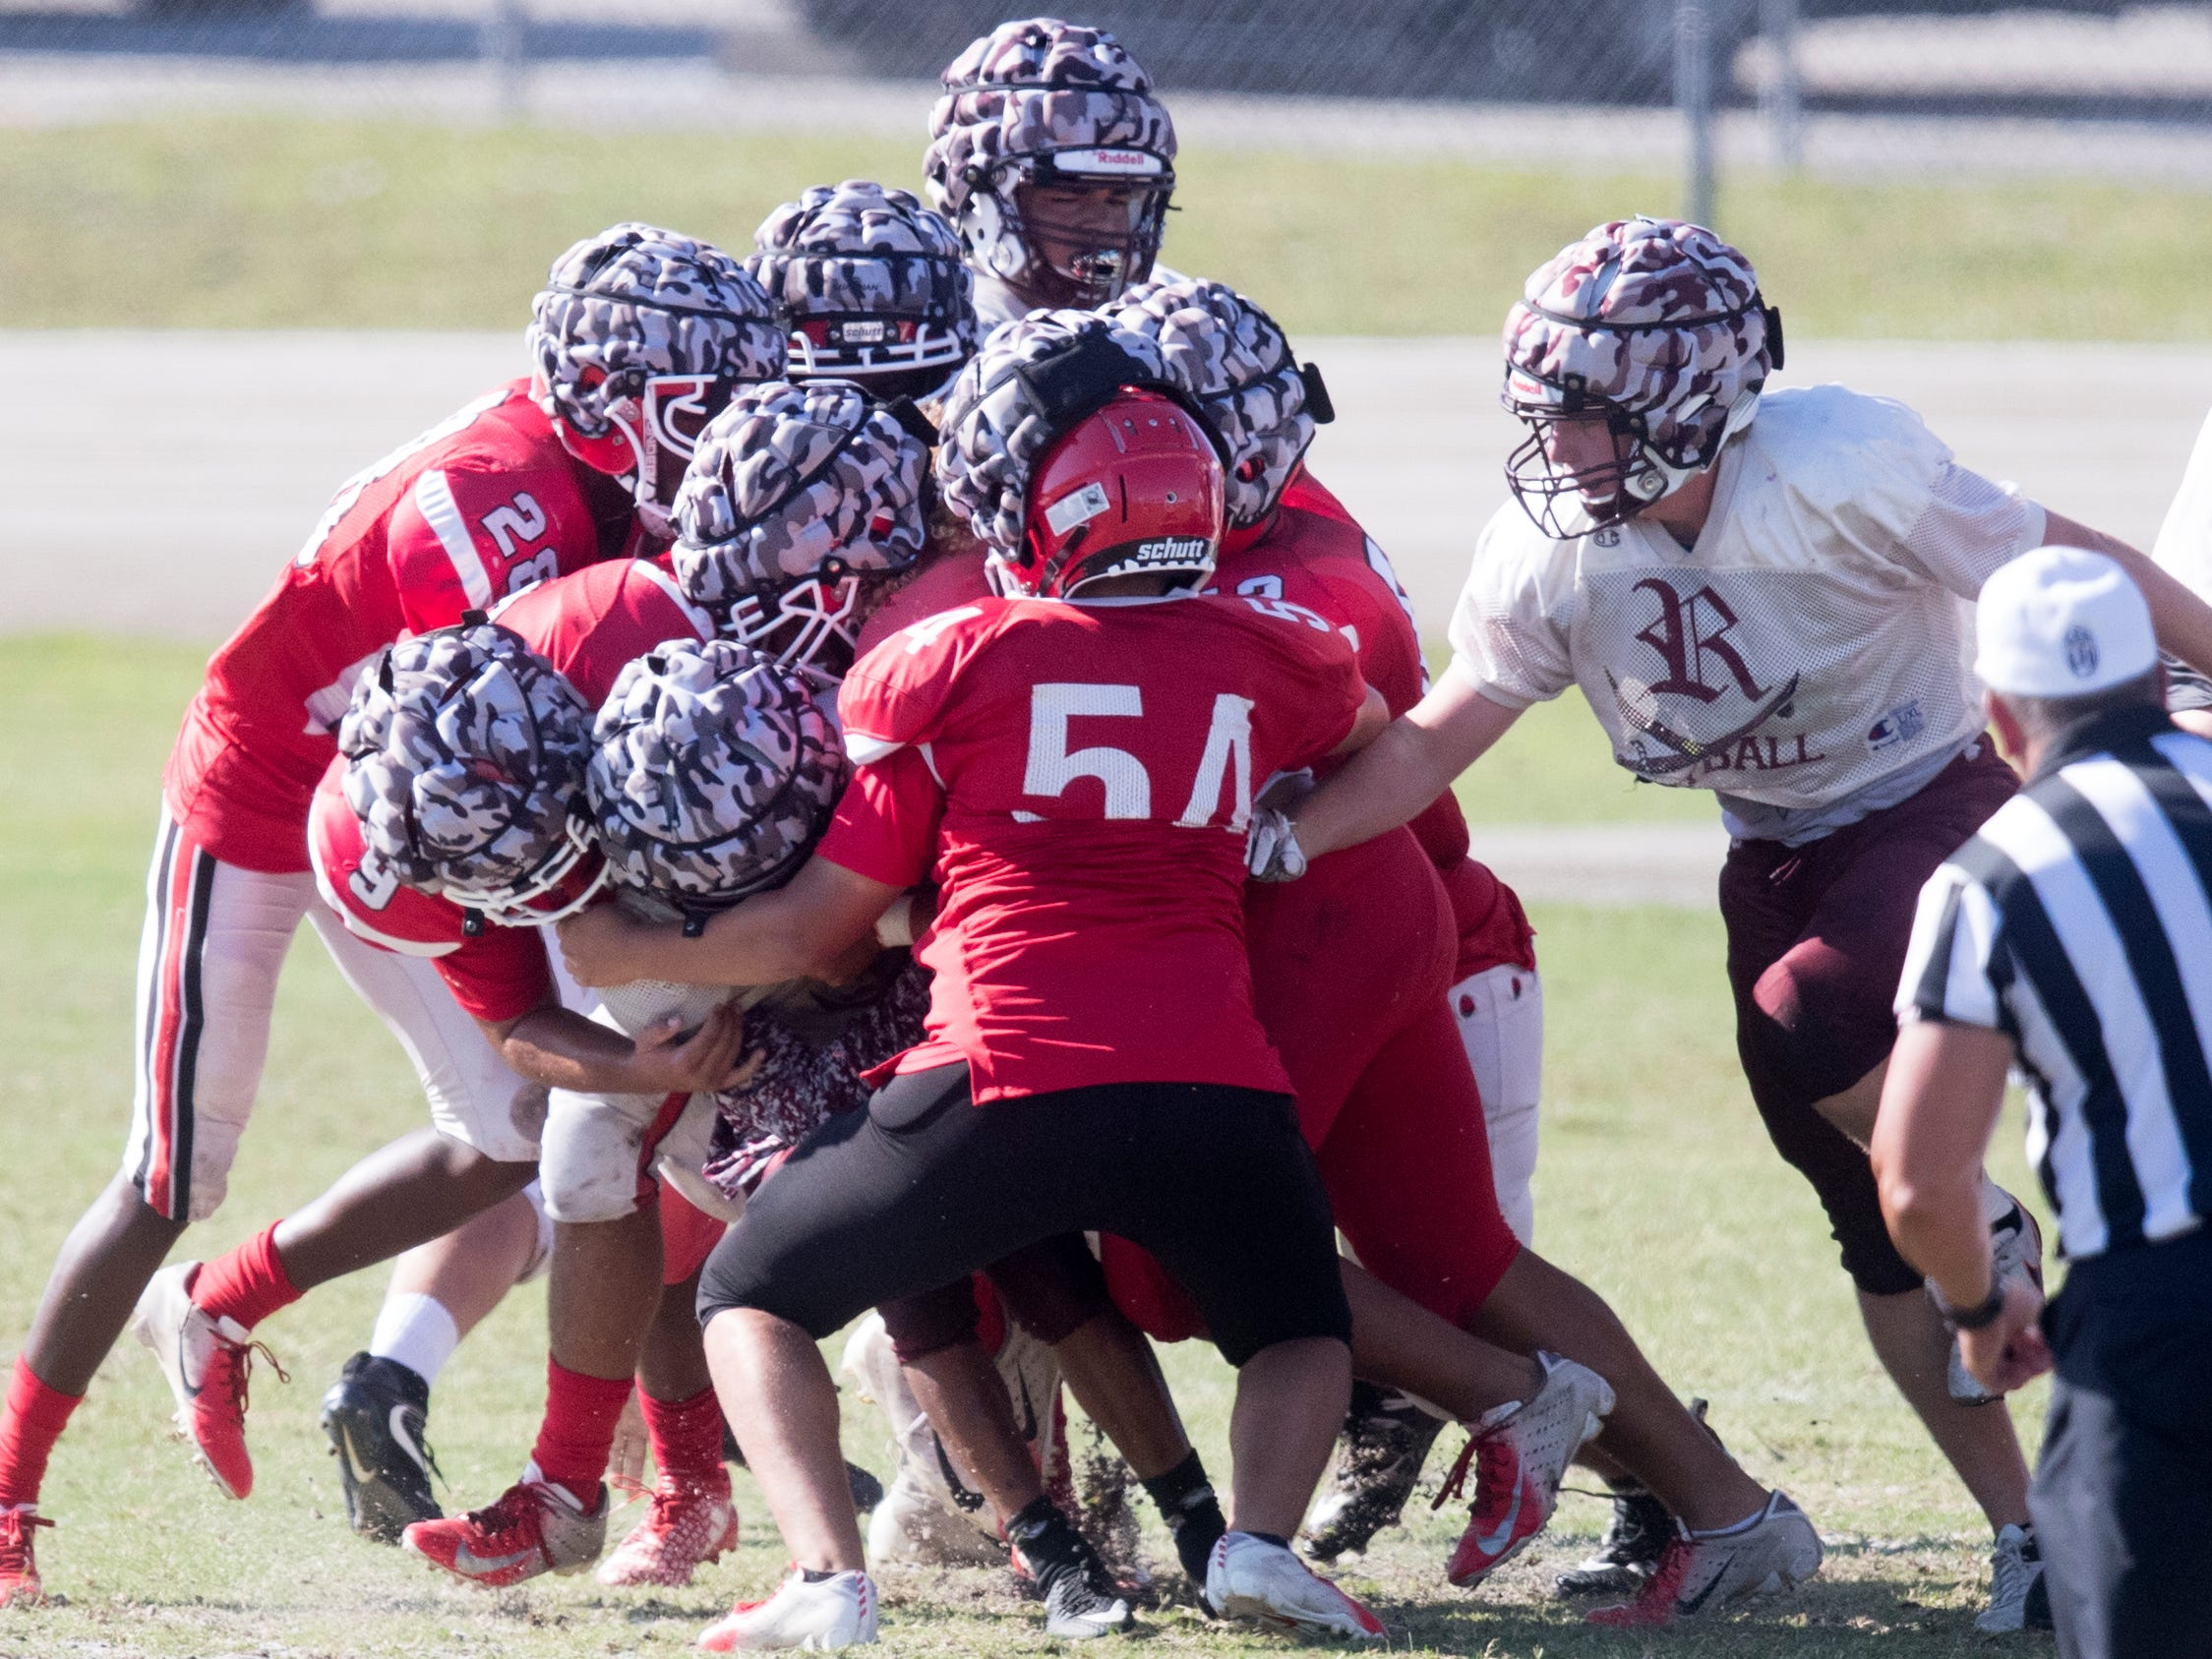 North Fort Myers High School joined Riverdale, Dunbar and Venice in a joint scrimmage on Saturday at North Fort Myers High School.